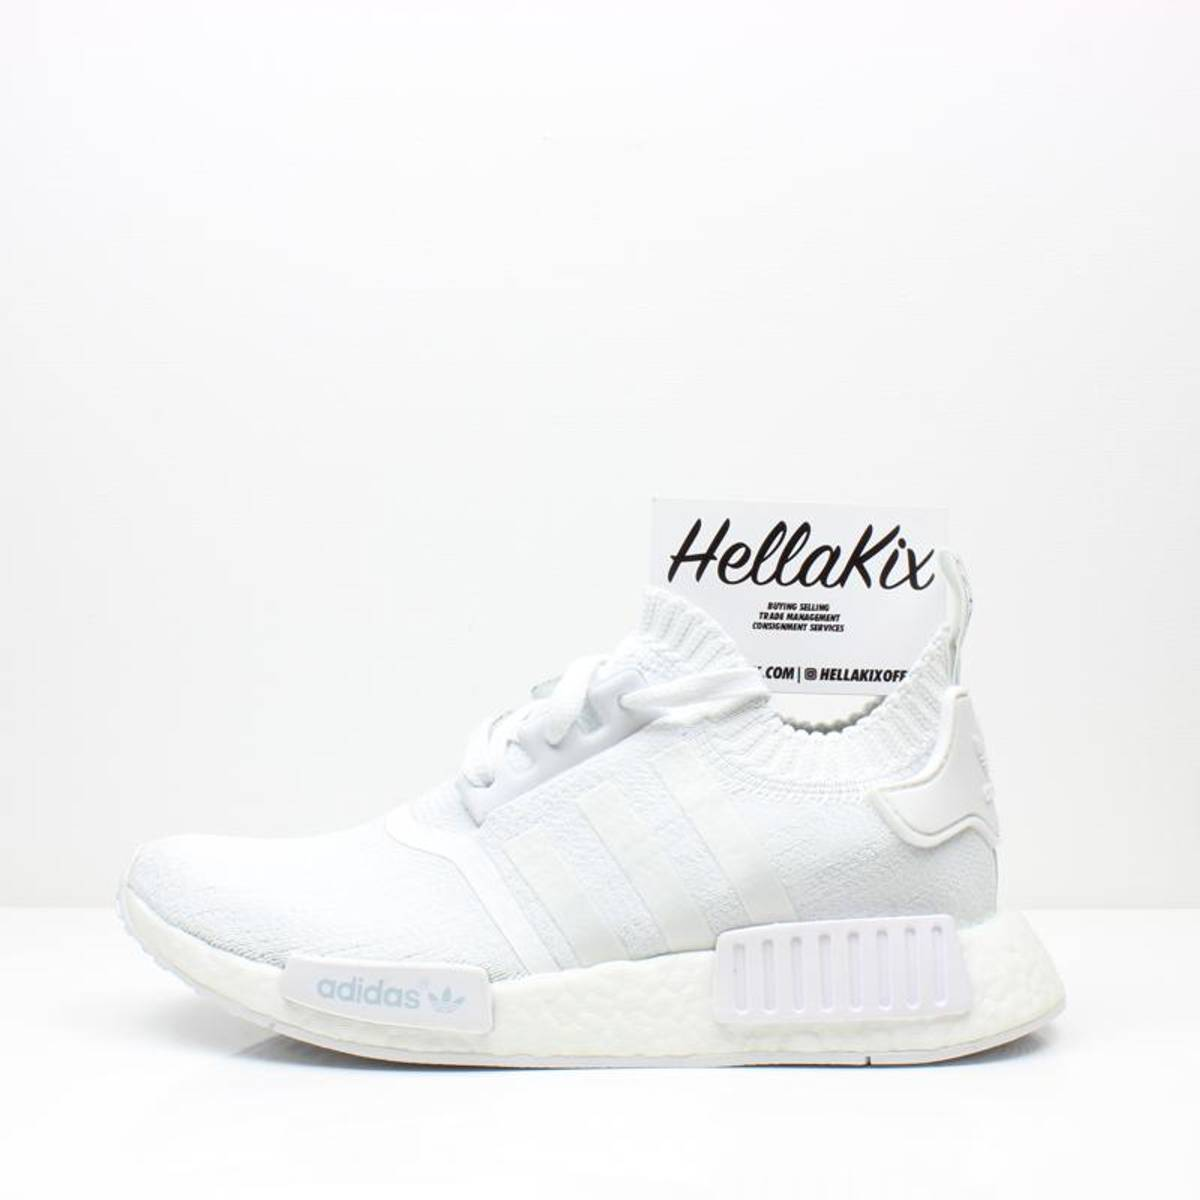 Adidas NMD R1 Trail Shoes for Women from Alice's closet on